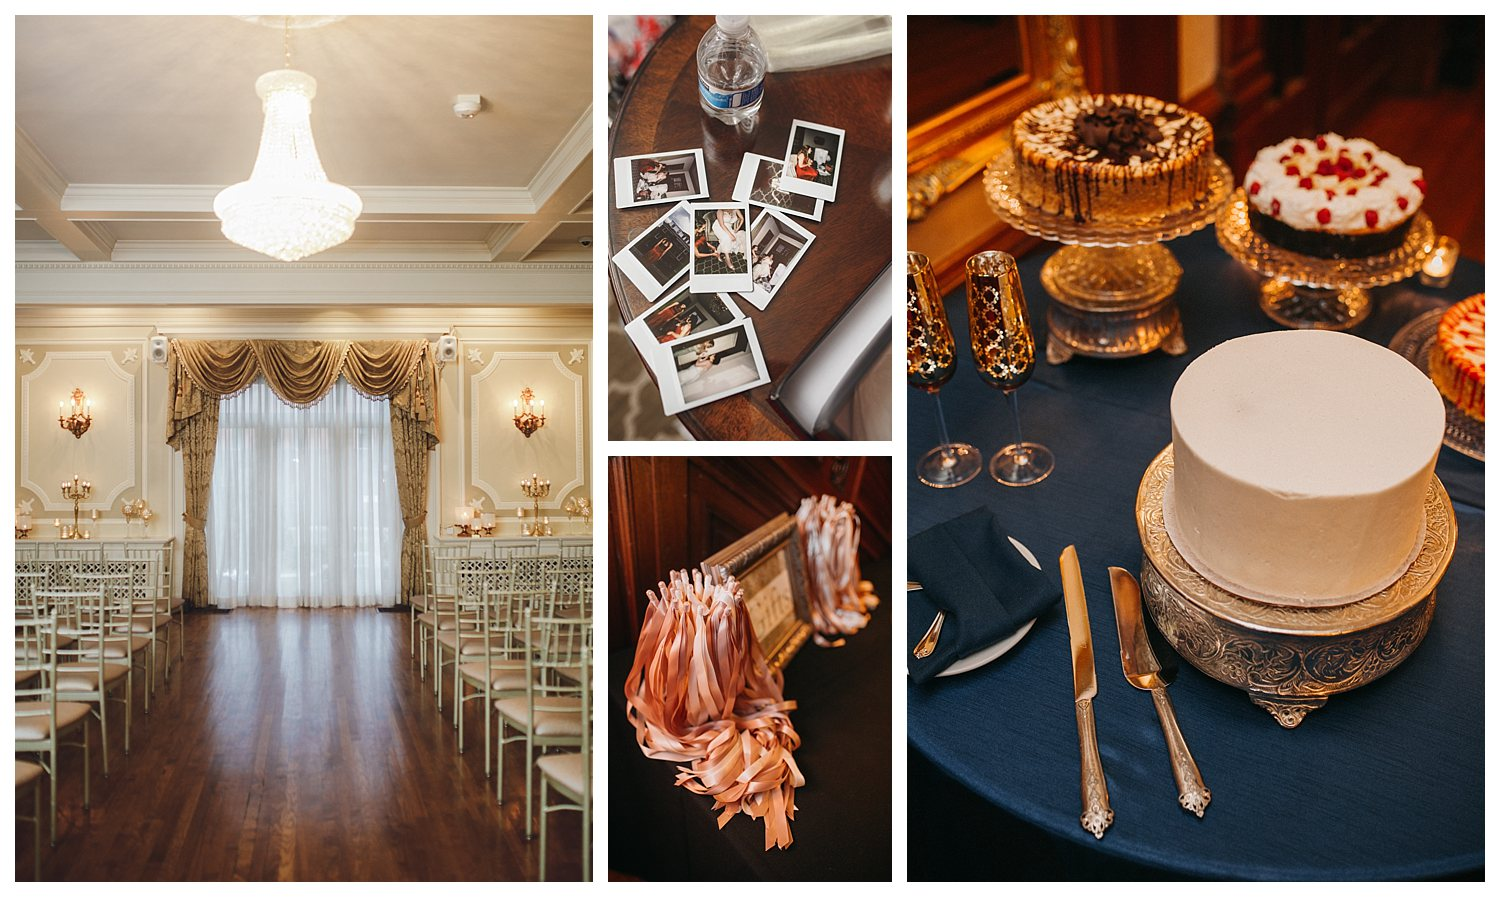 Kelsey_Diane_Photography_Loose_Mansion_Wedding_Photography_Kansas_City_Victor_Lyndsay_0139.jpg